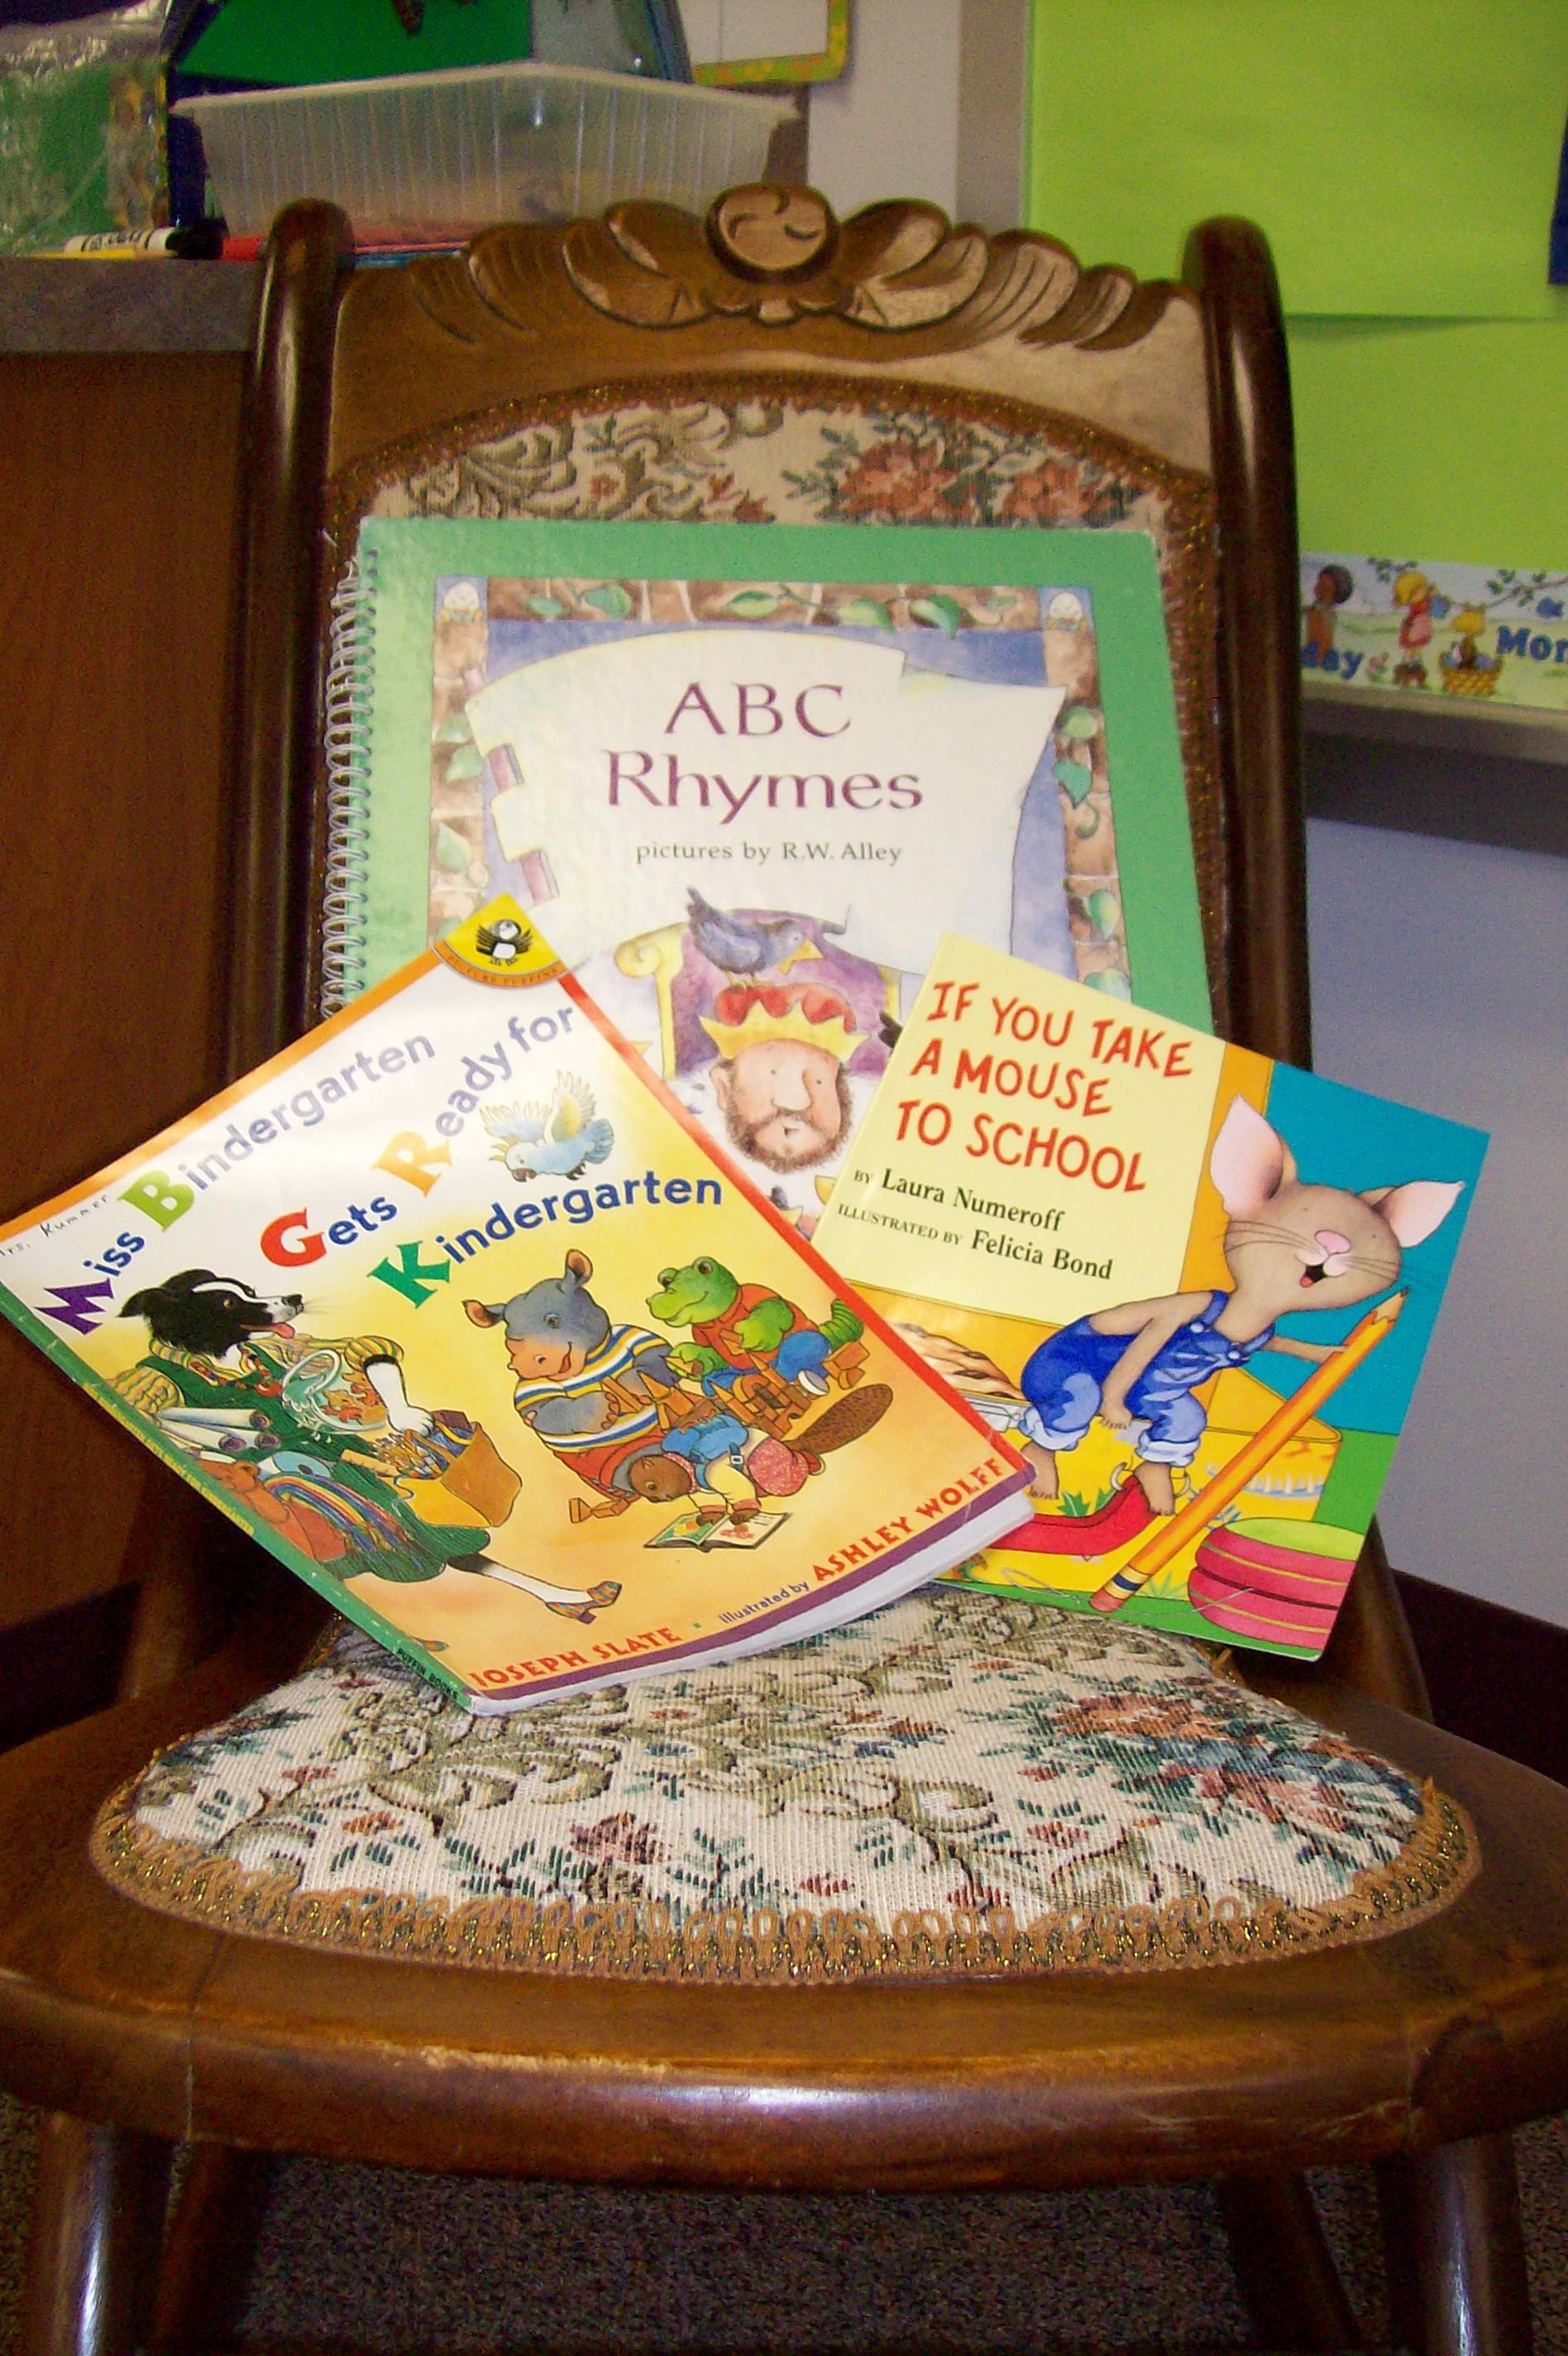 Ideas and songs for teaching ABCs